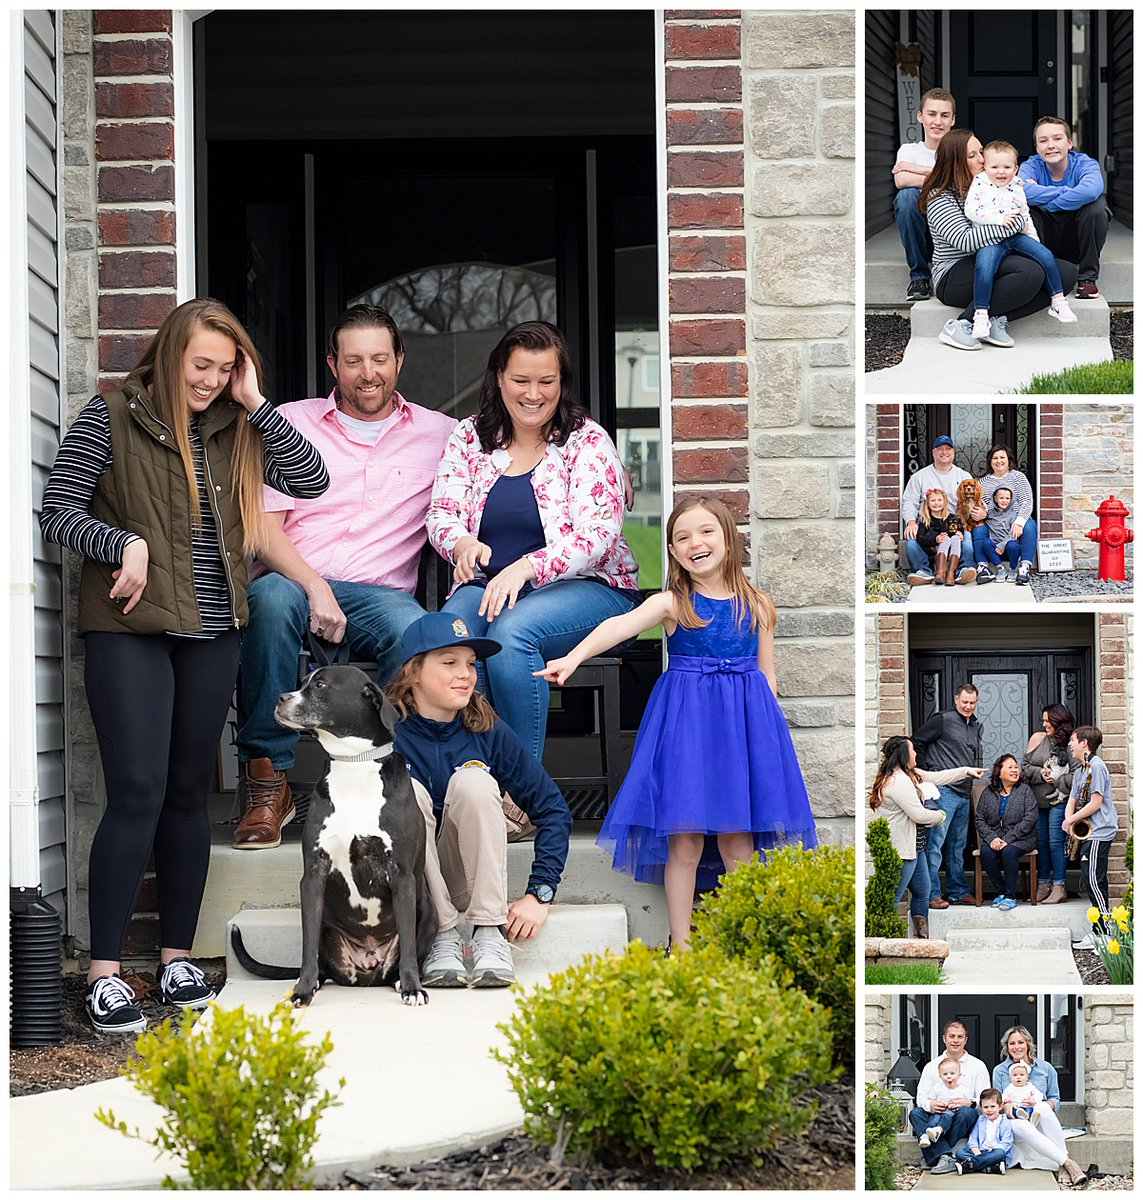 """I have had such a blast with the """"Front Porch Picture Project""""! Check these families out!  #Sundbergphotography #WentzvilleMO #lifestylephotographer #lifestylefamilyphotographer #wentzvillefamilyphotographer #coronavid19 #coronavairus #coronanews #coronalockdownpic.twitter.com/Dz2EqykWbX"""